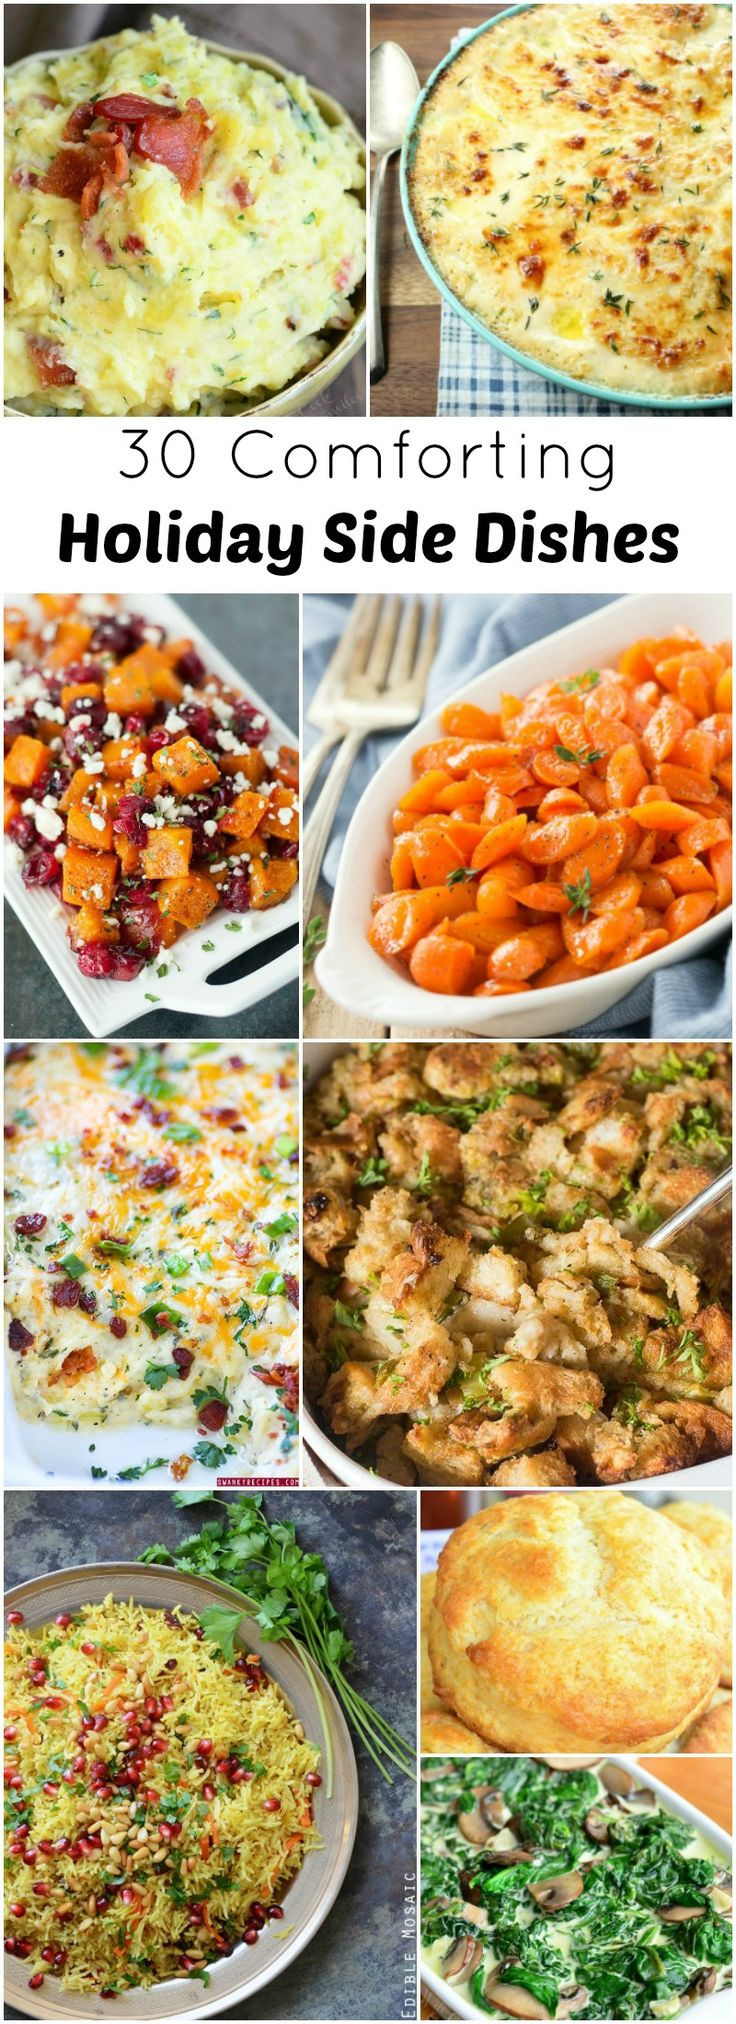 Side Dishes Christmas  Best 20 Holiday Side Dishes ideas on Pinterest